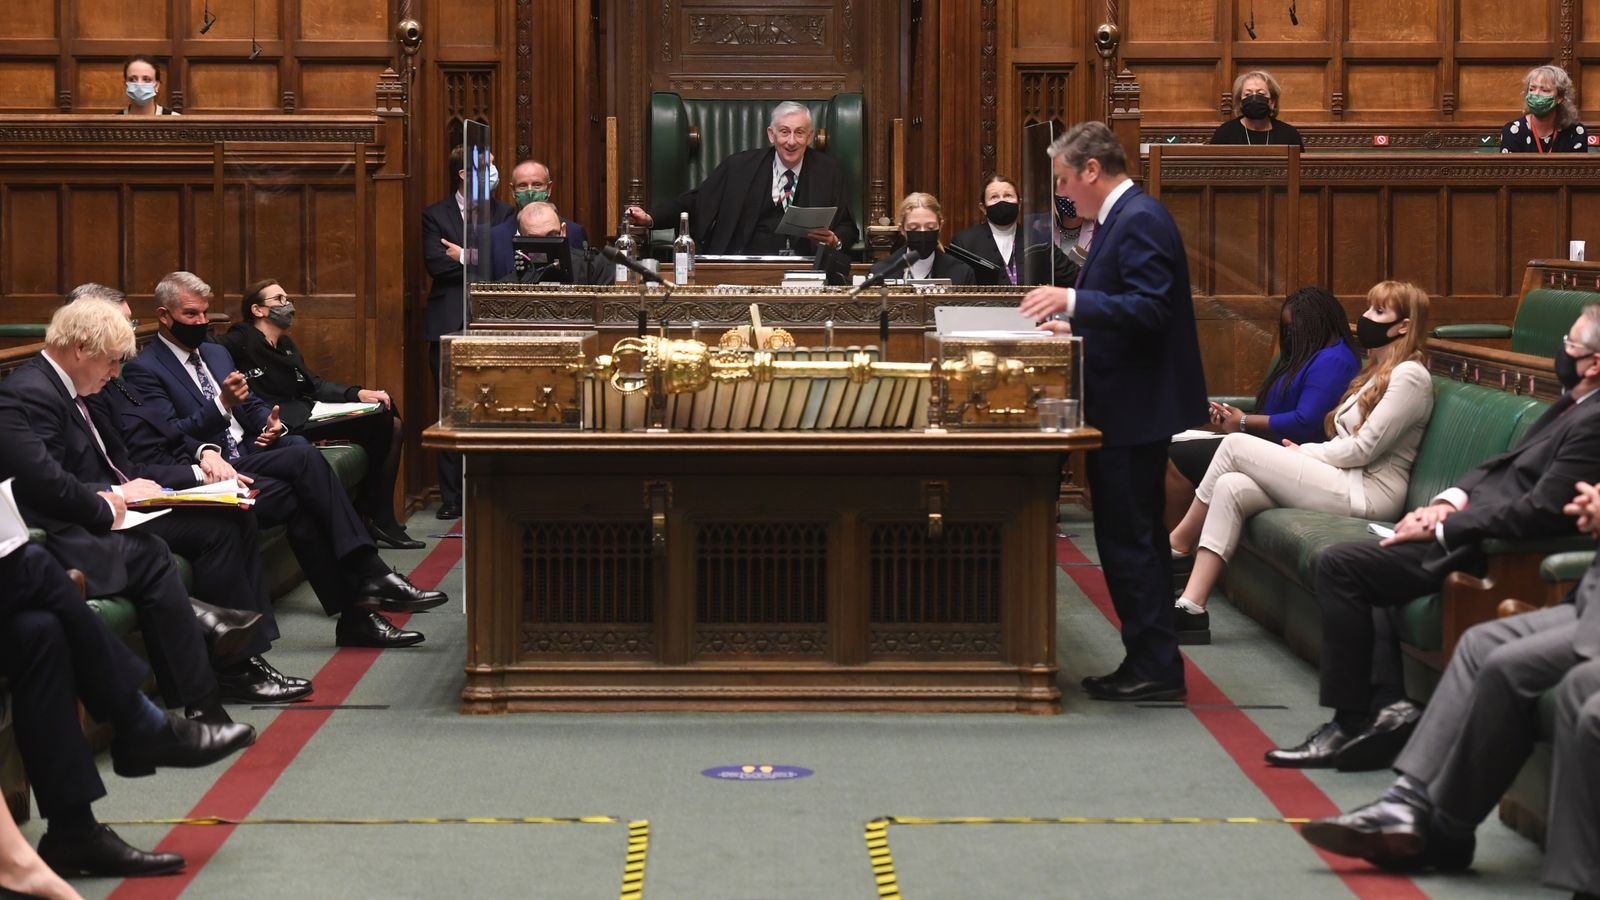 COVID-19: Parliament staff 'incredulous and angry' at MPs not having to wear masks from Monday